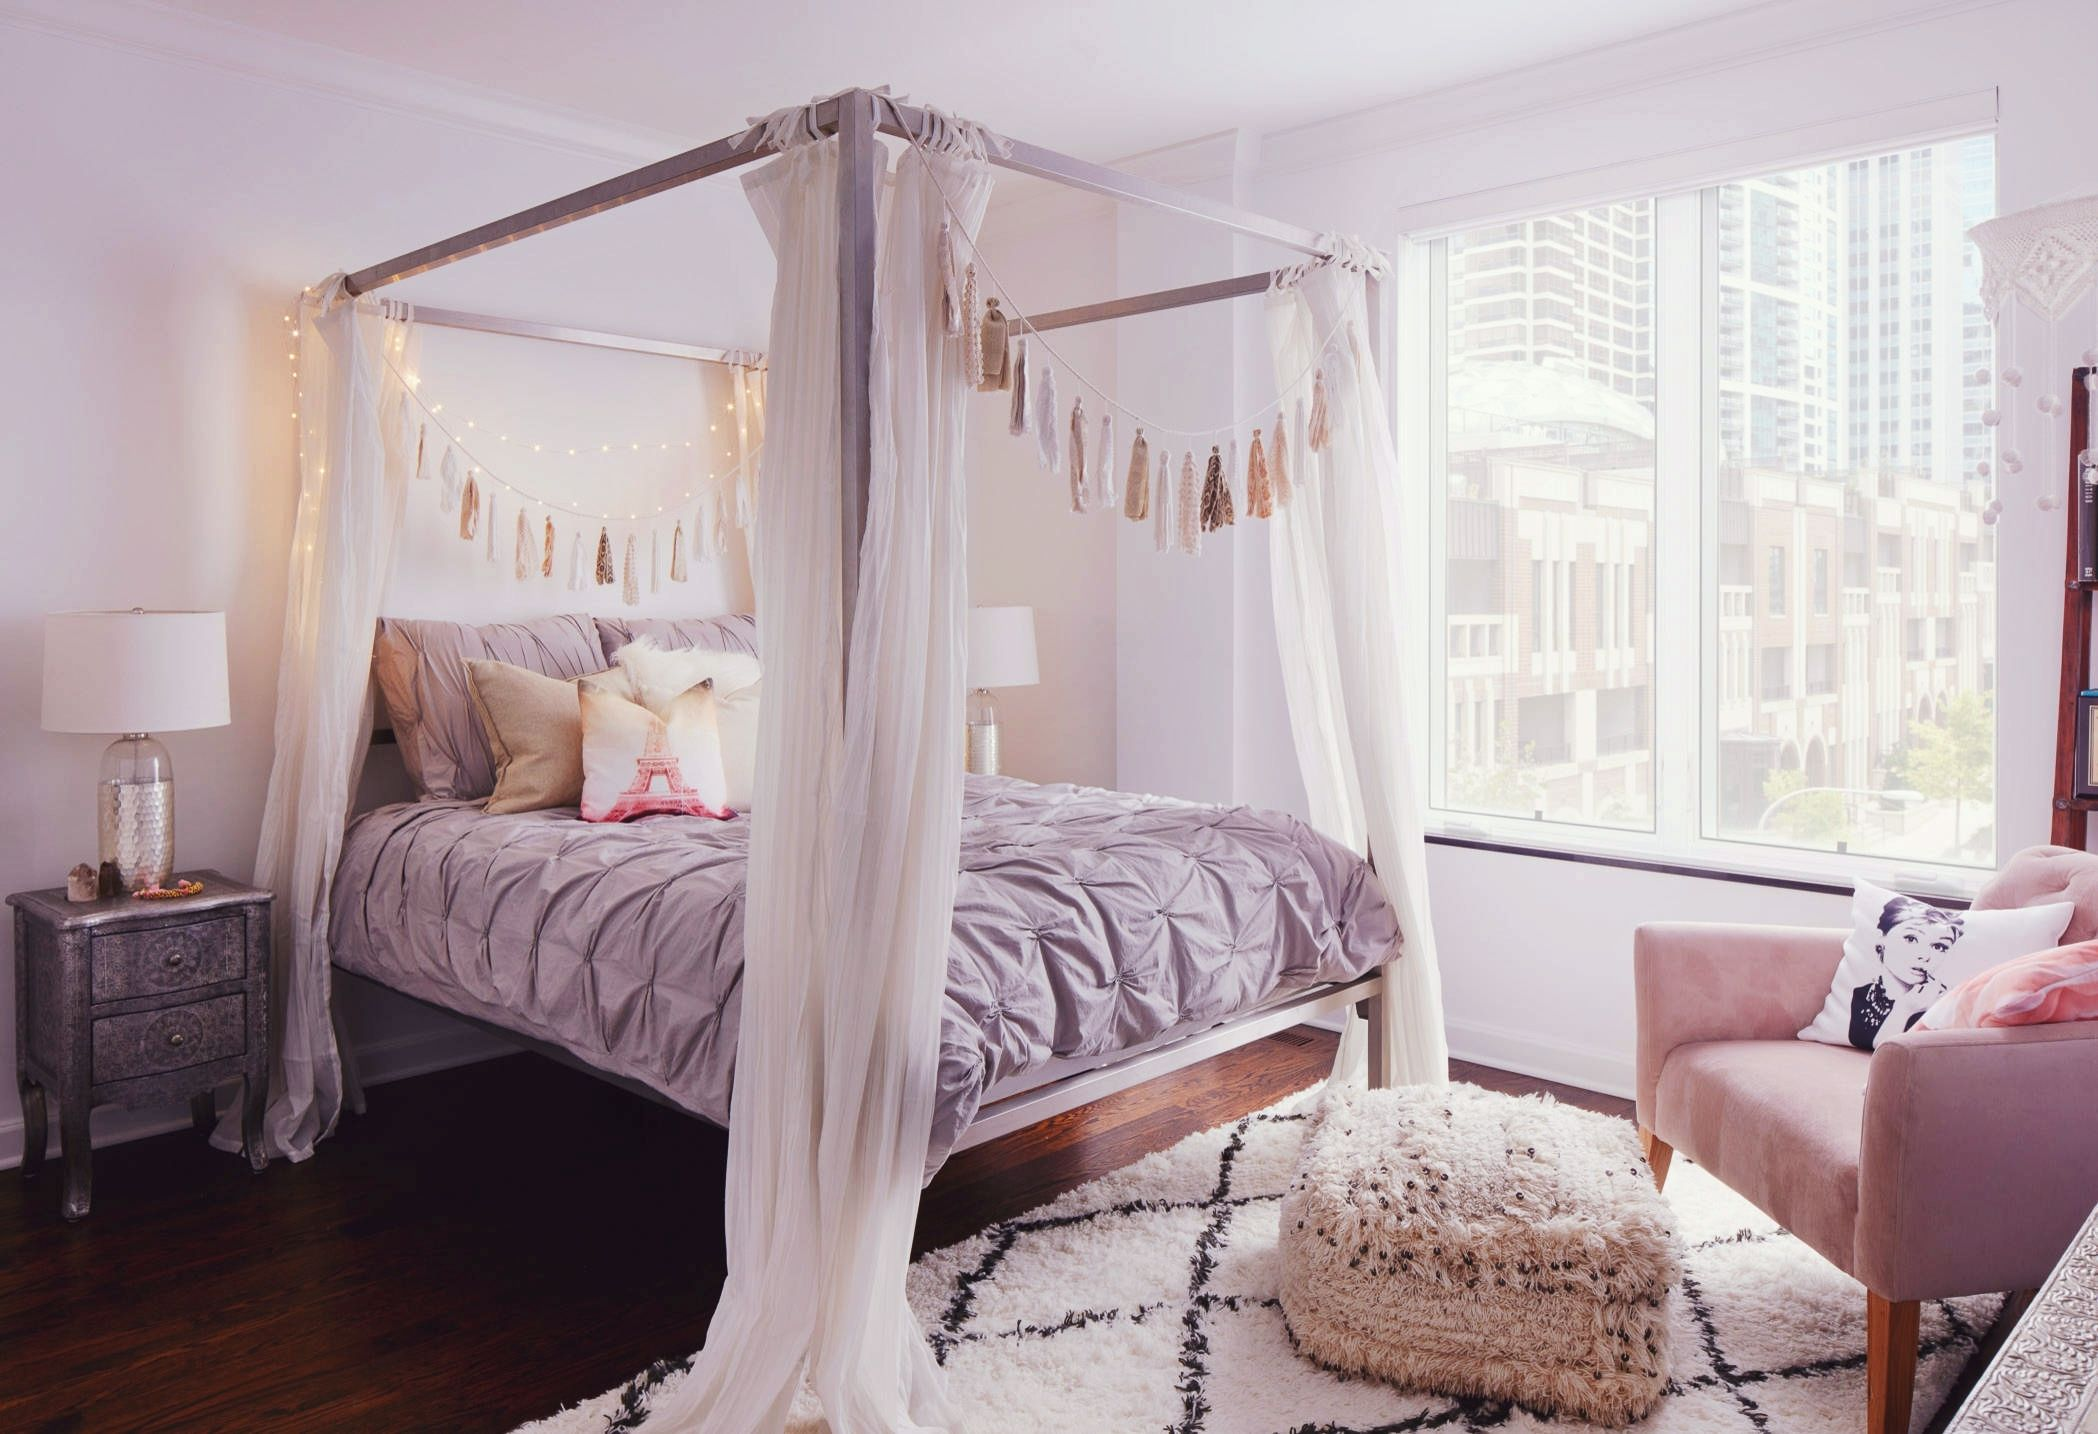 Wonderful Bohemian Bedroom Inspiration: Four Poster Beds With Boho Chic Vibes